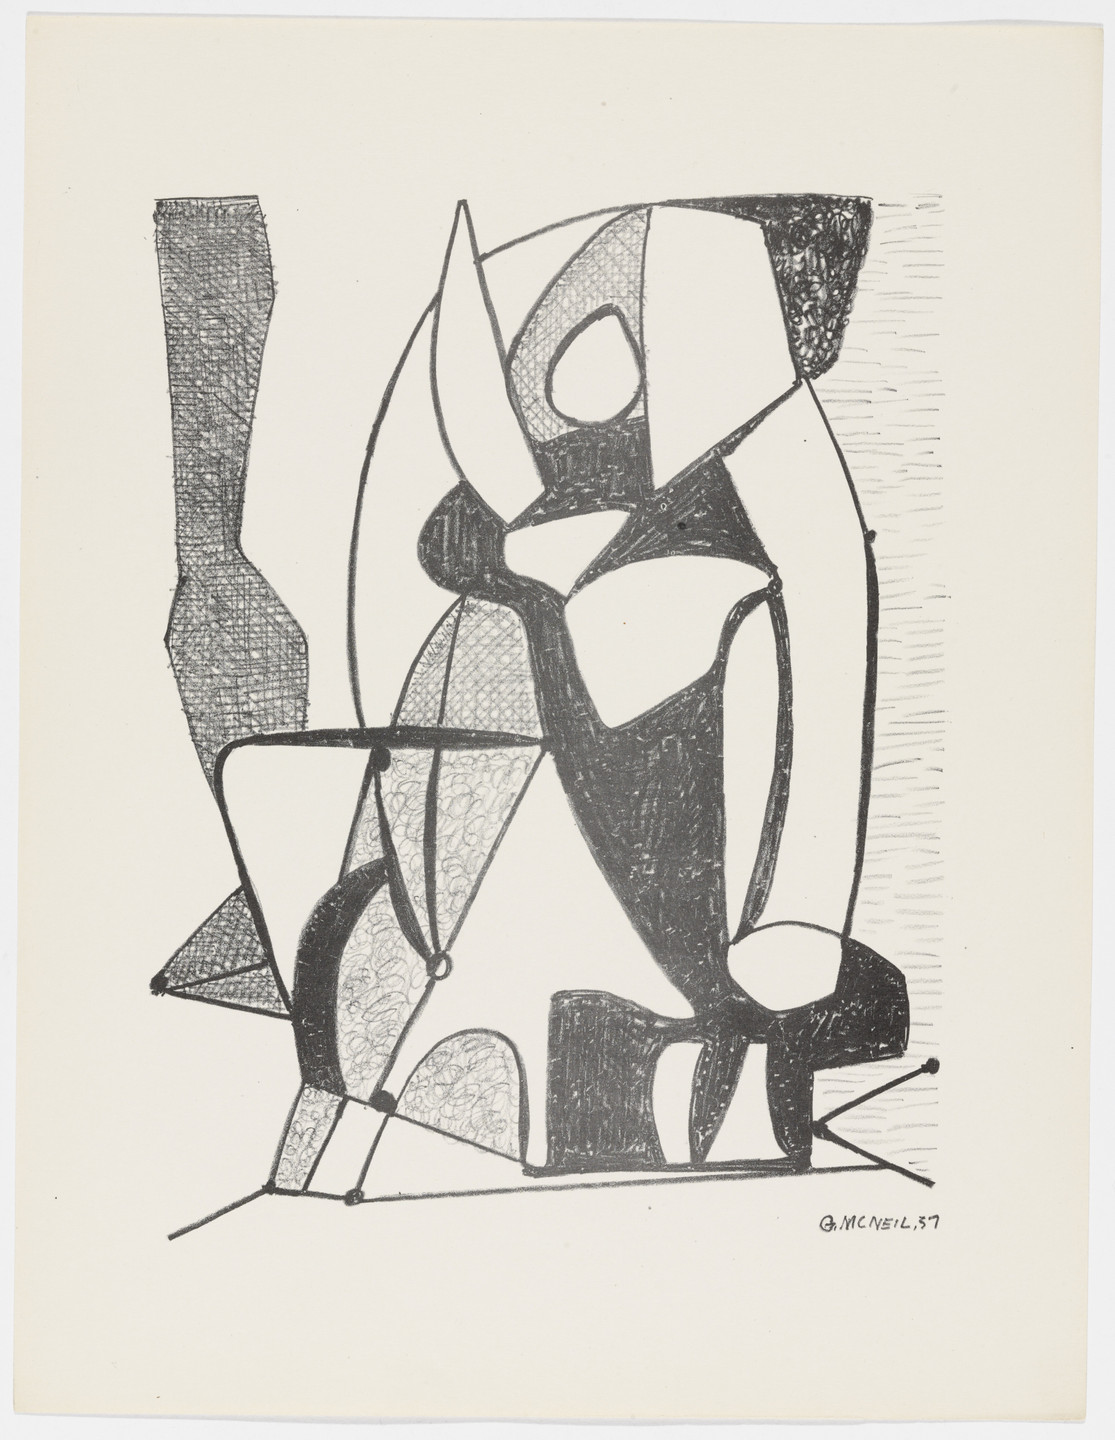 George McNeil. Untitled from American Abstract Artists. 1937